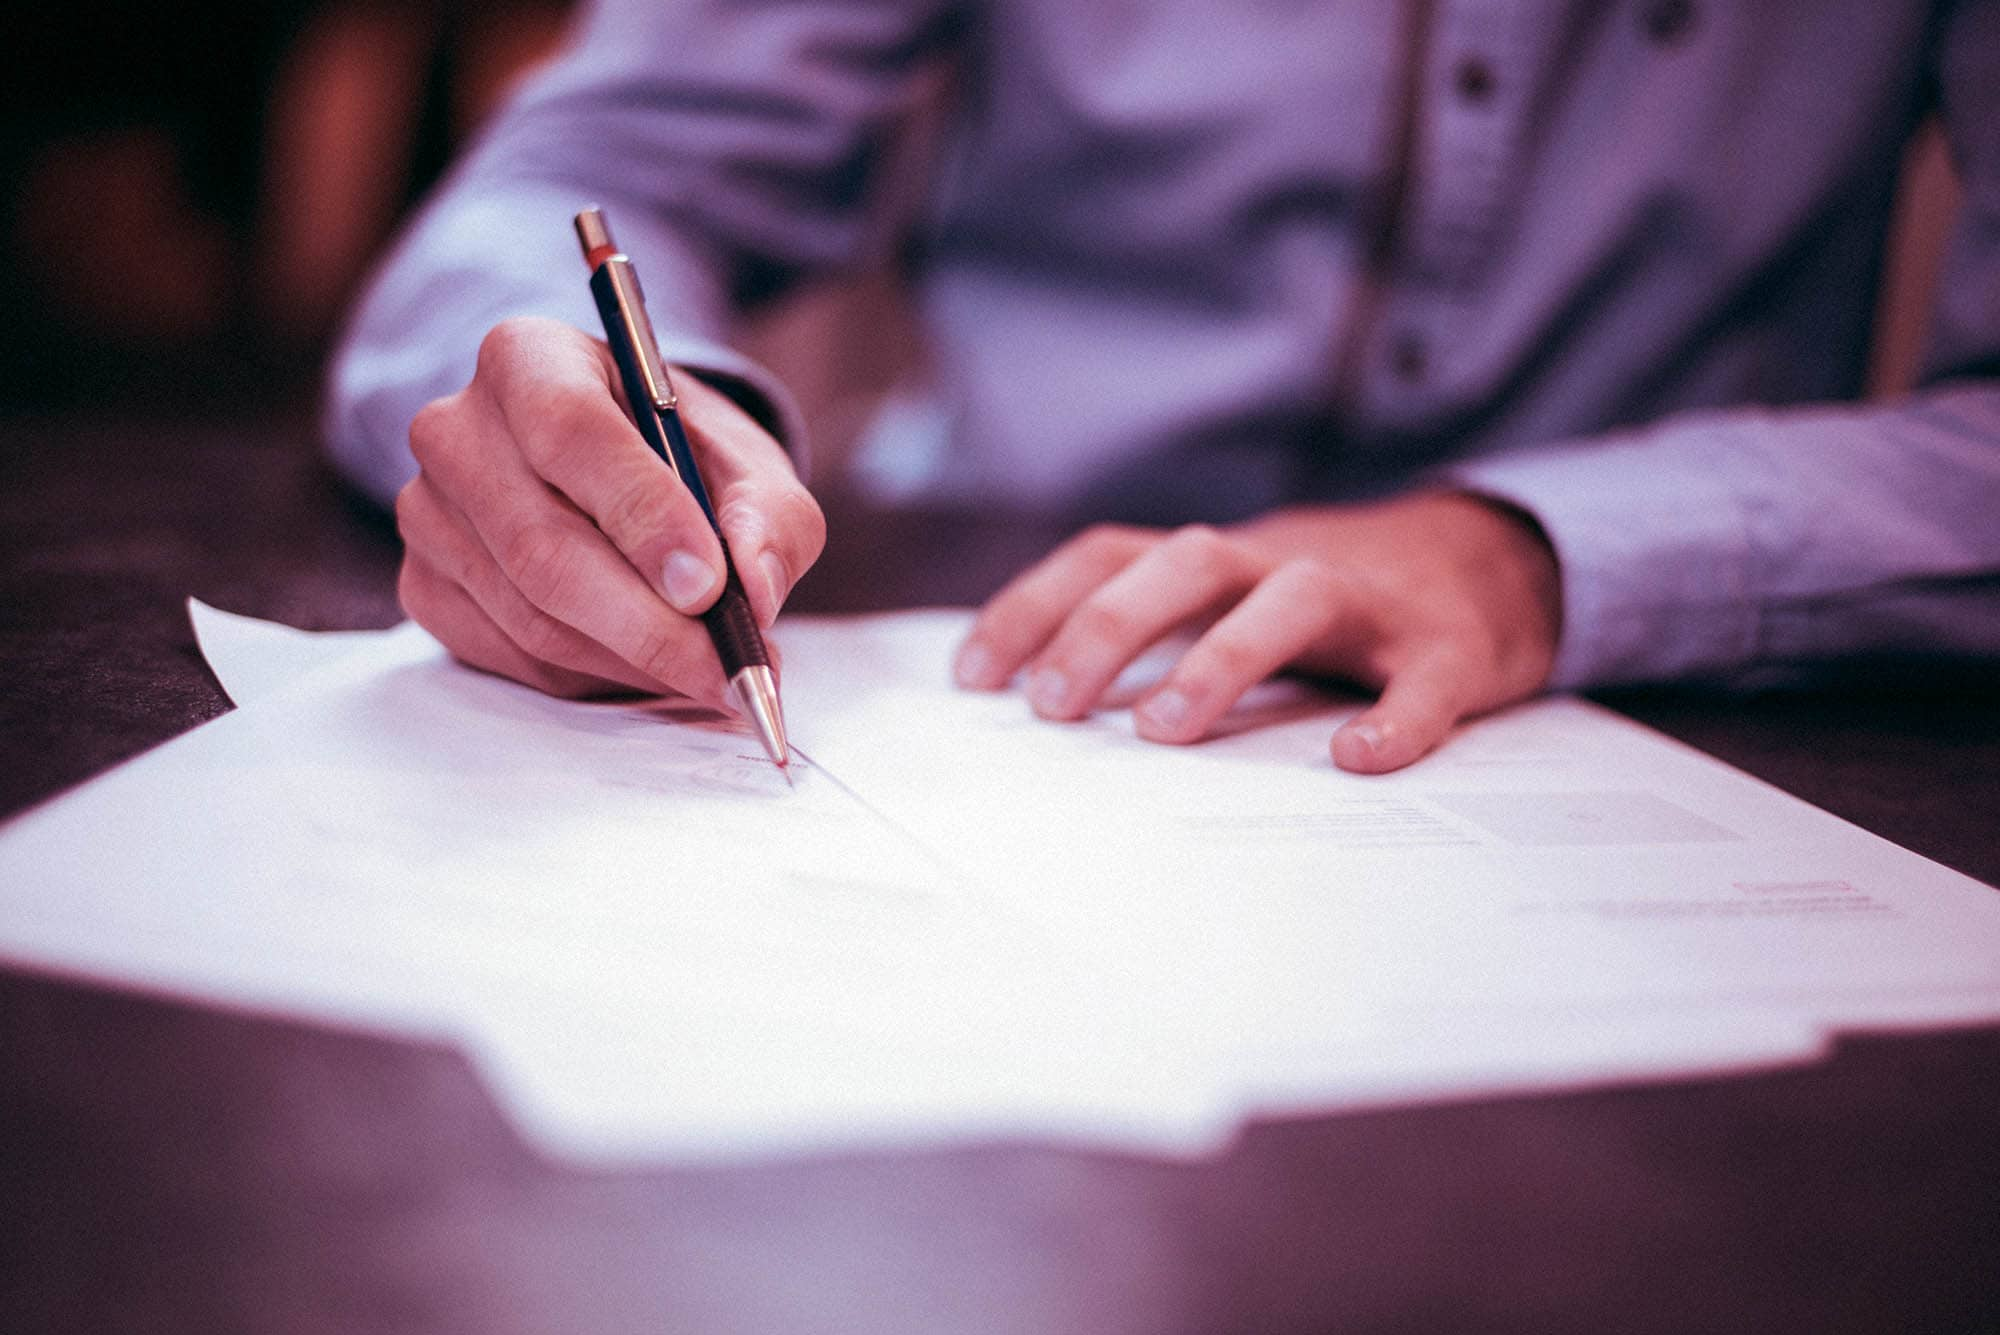 Photo of man signing a legal document. (photo: unsplash)